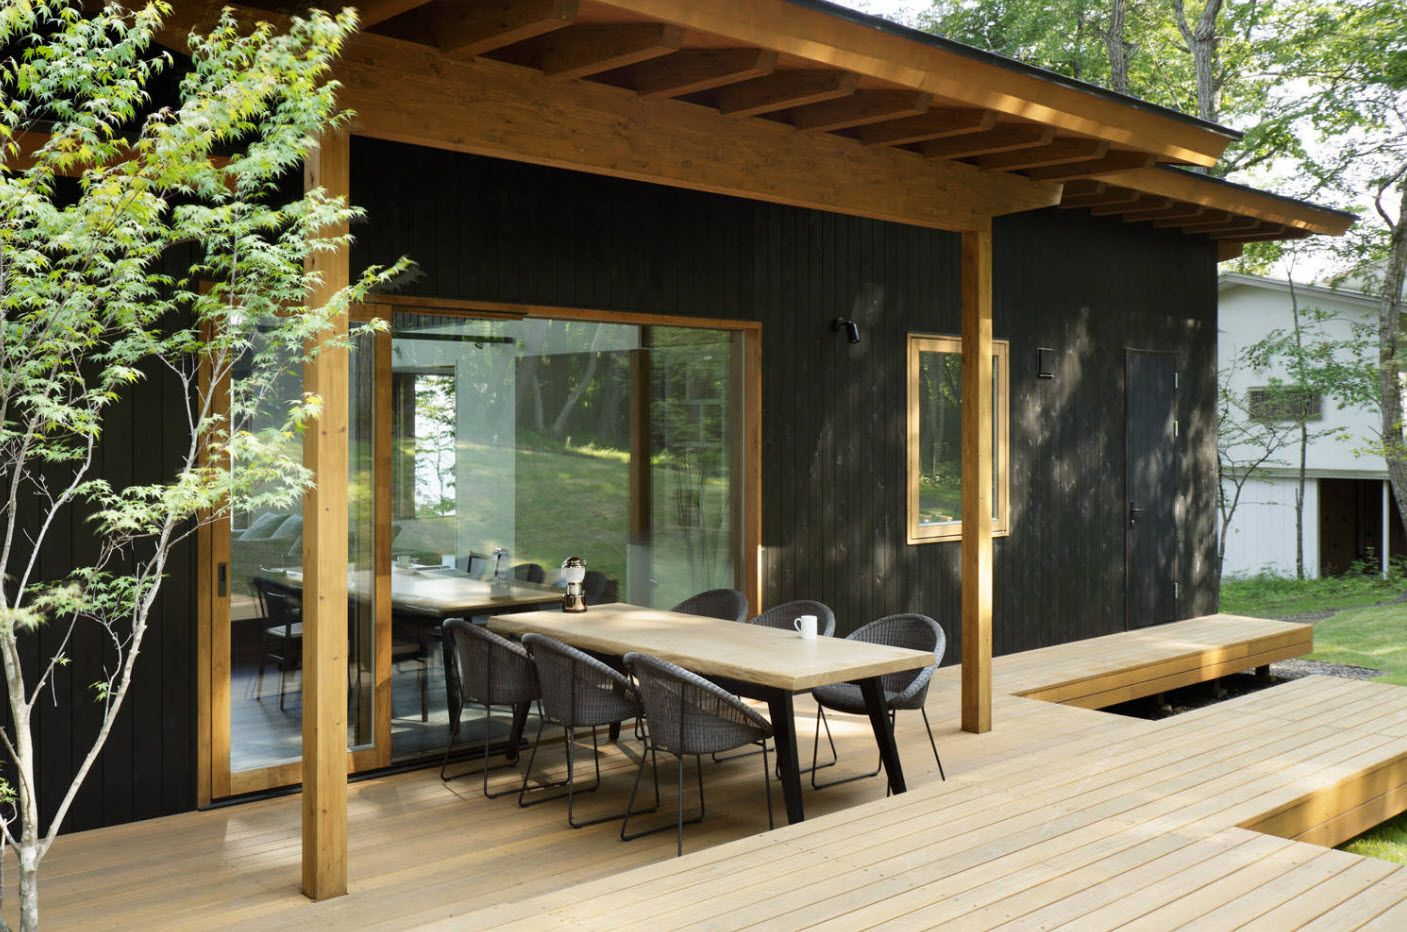 Experimental and spectacular design of the open terrace at the porch with black house facade and light wooden platform and roof